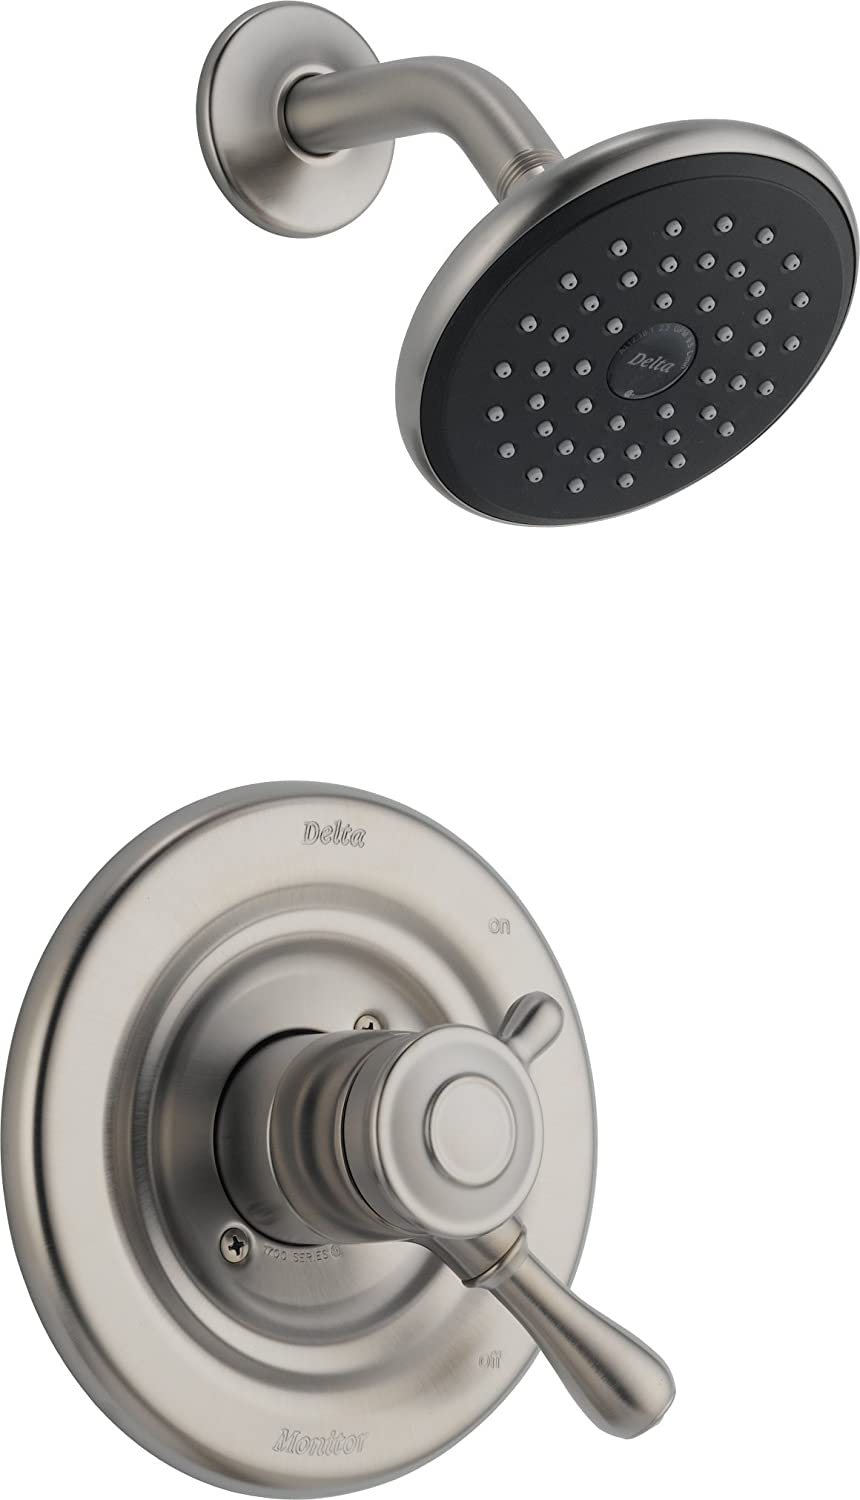 Delta T17278 SS Leland Monitor 17 Series Shower Trim, Stainless   Shower  Installation Kits   Amazon.com